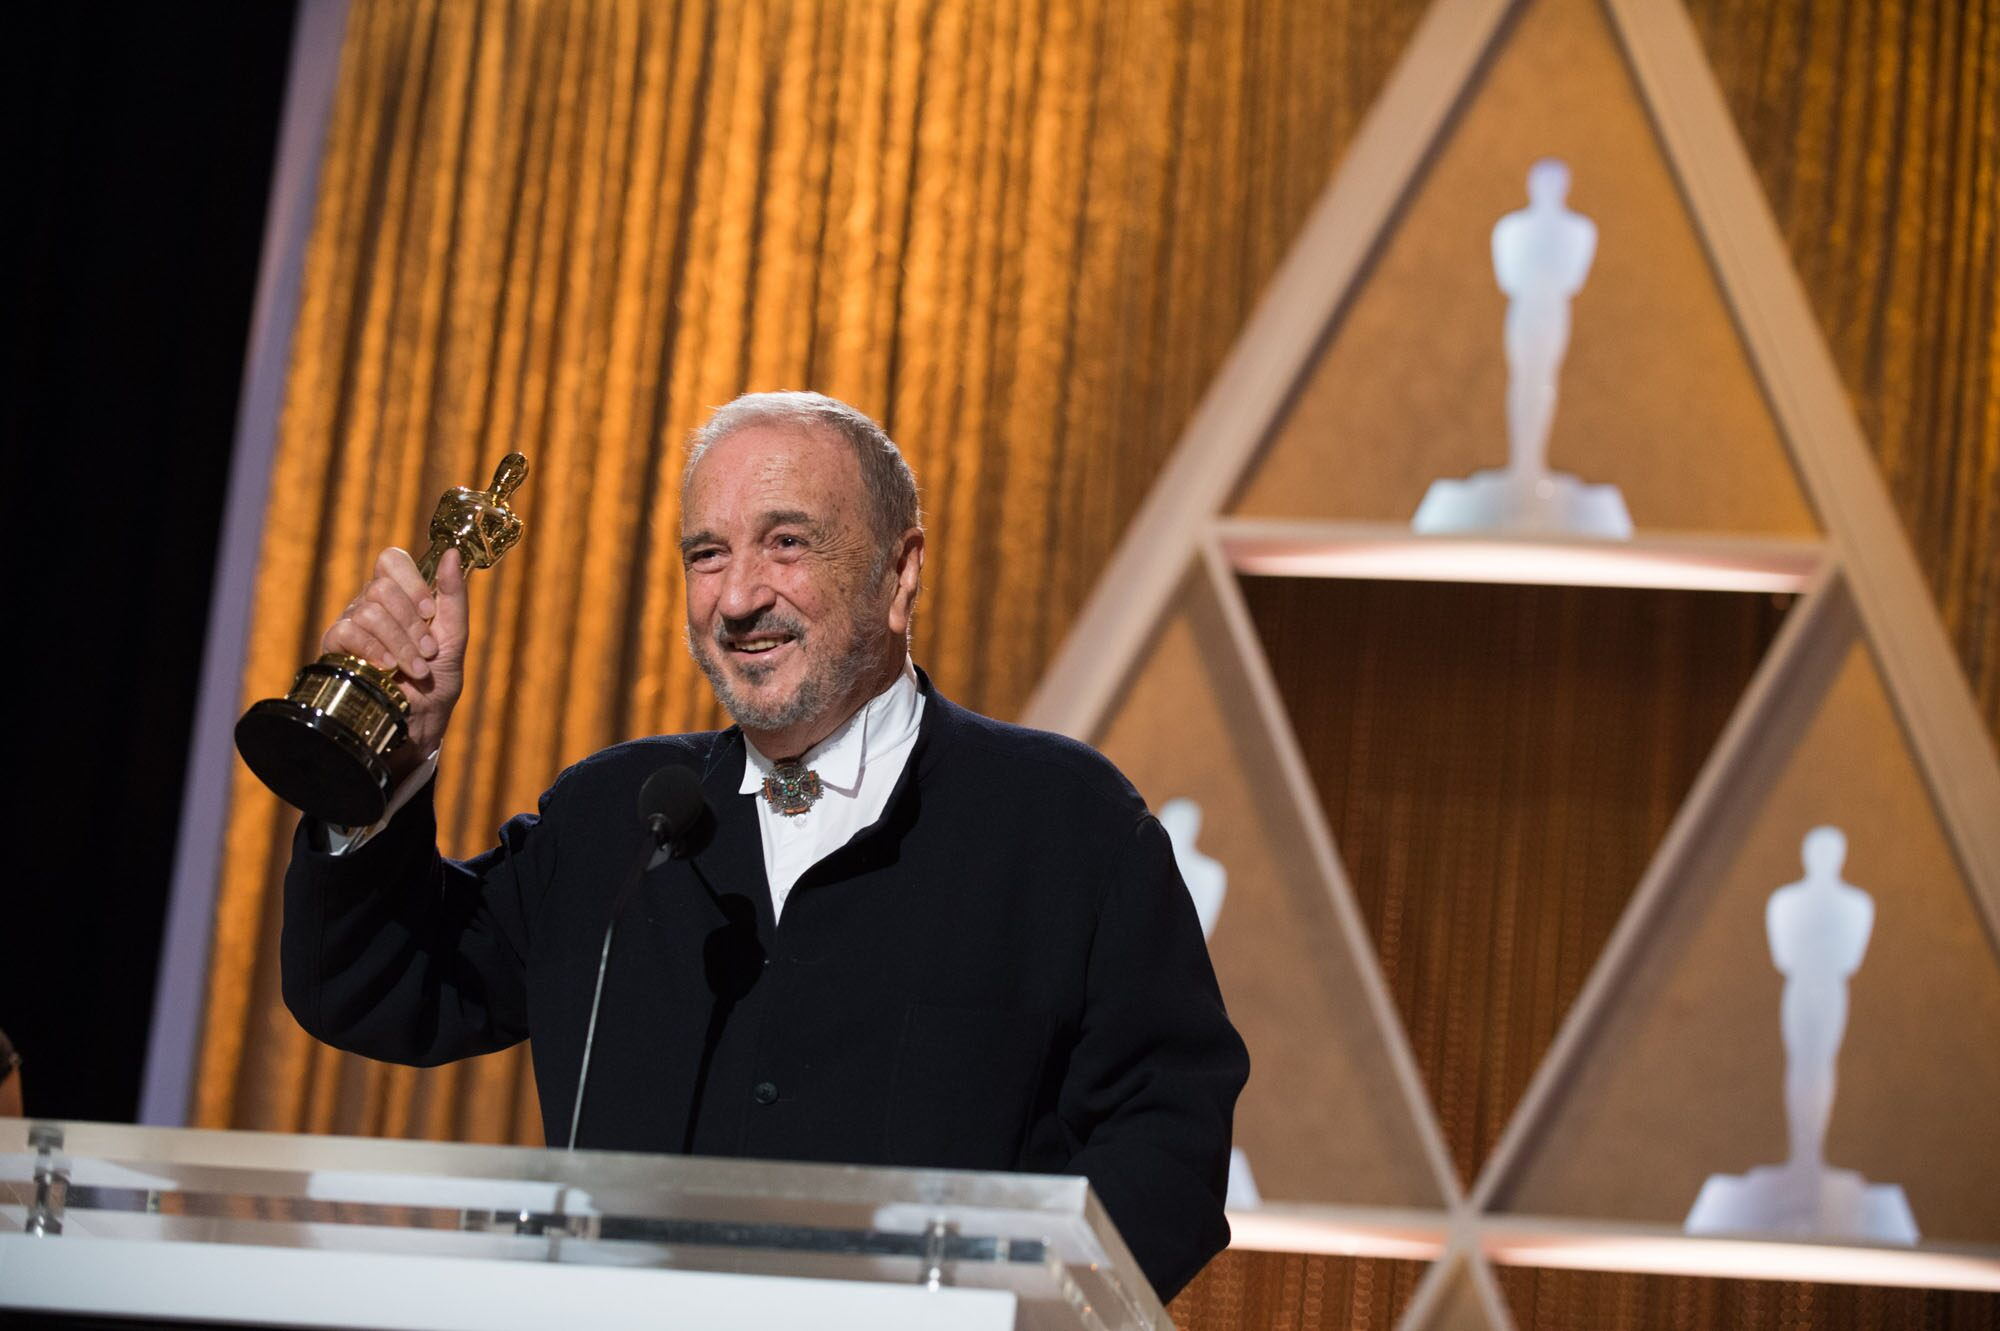 Honorary Award to recipient Jean-Claude Carrière during the 2014 Governors Awards